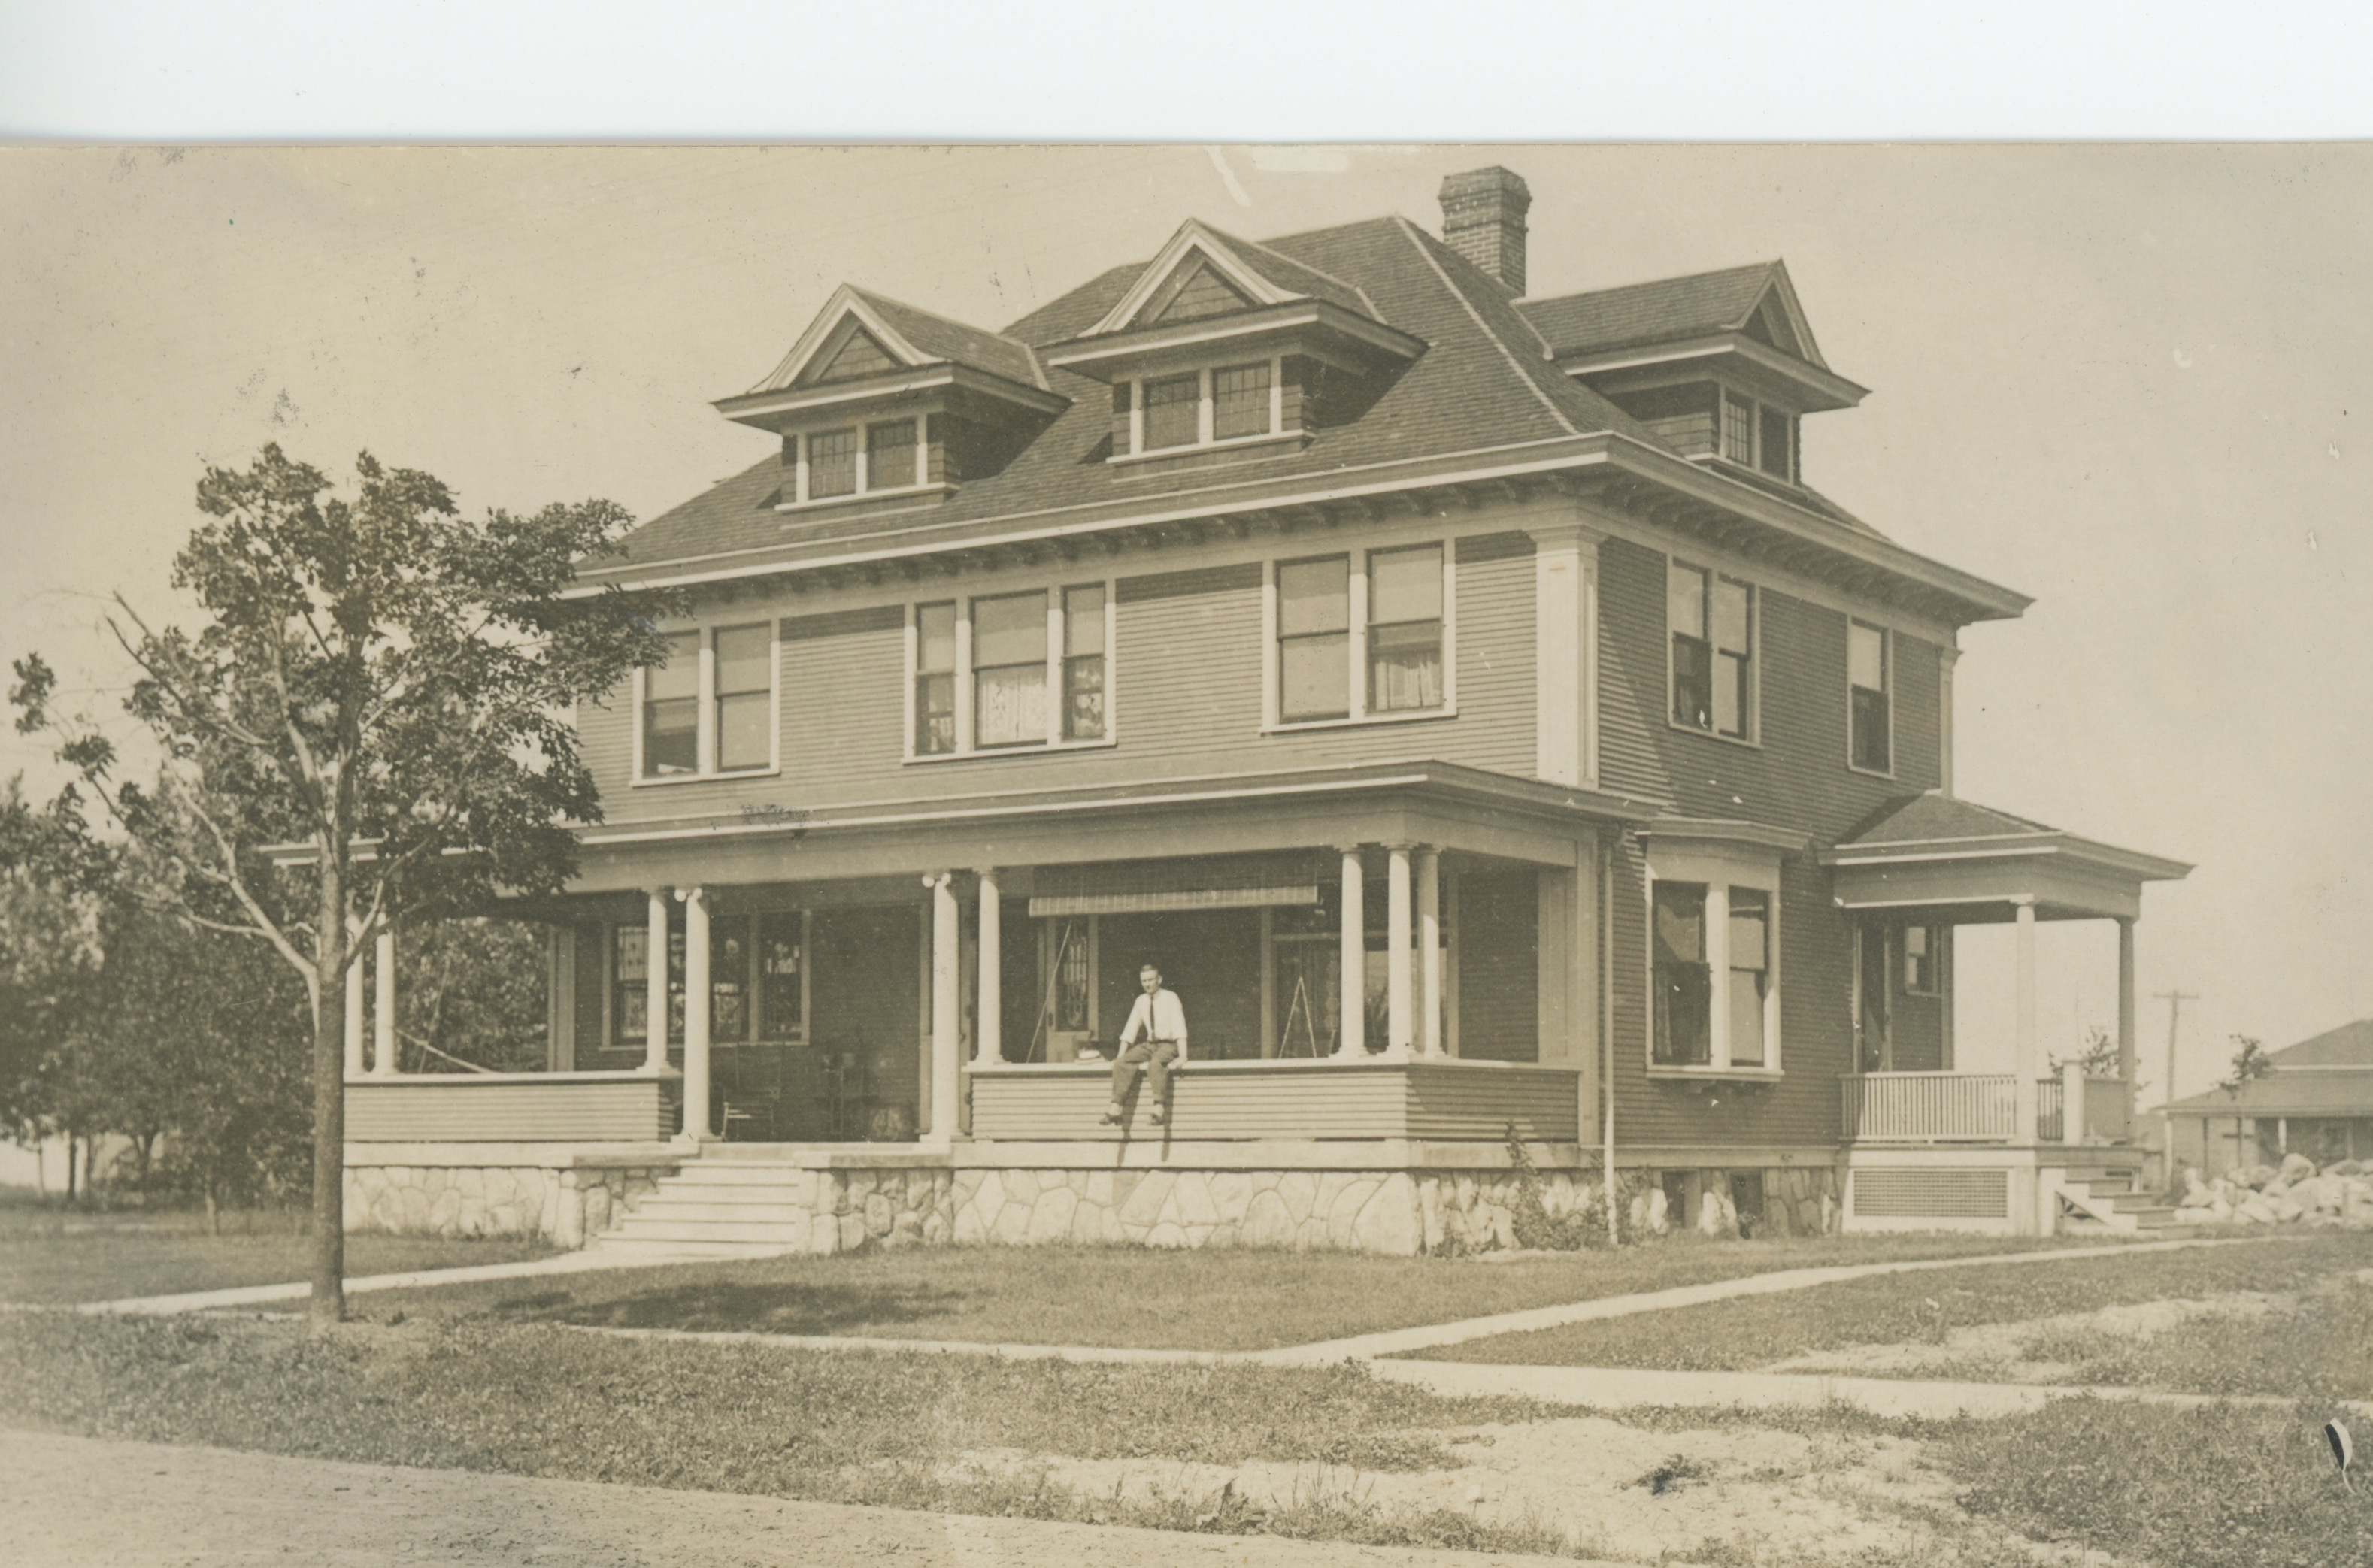 History of historic Mack house.